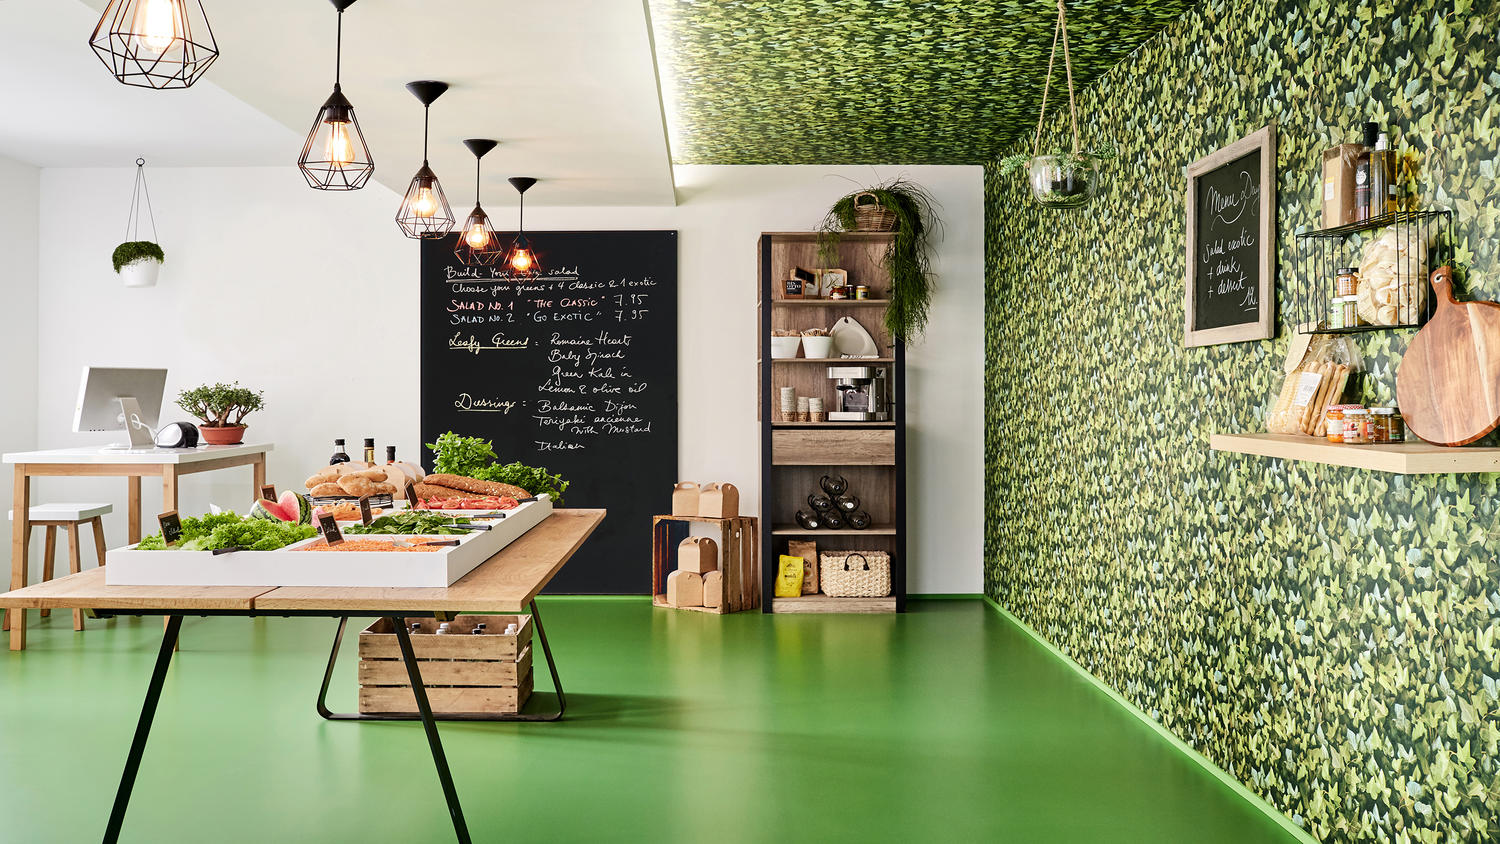 Read about how we commit to designing products that contribute to creating healthier spaces.